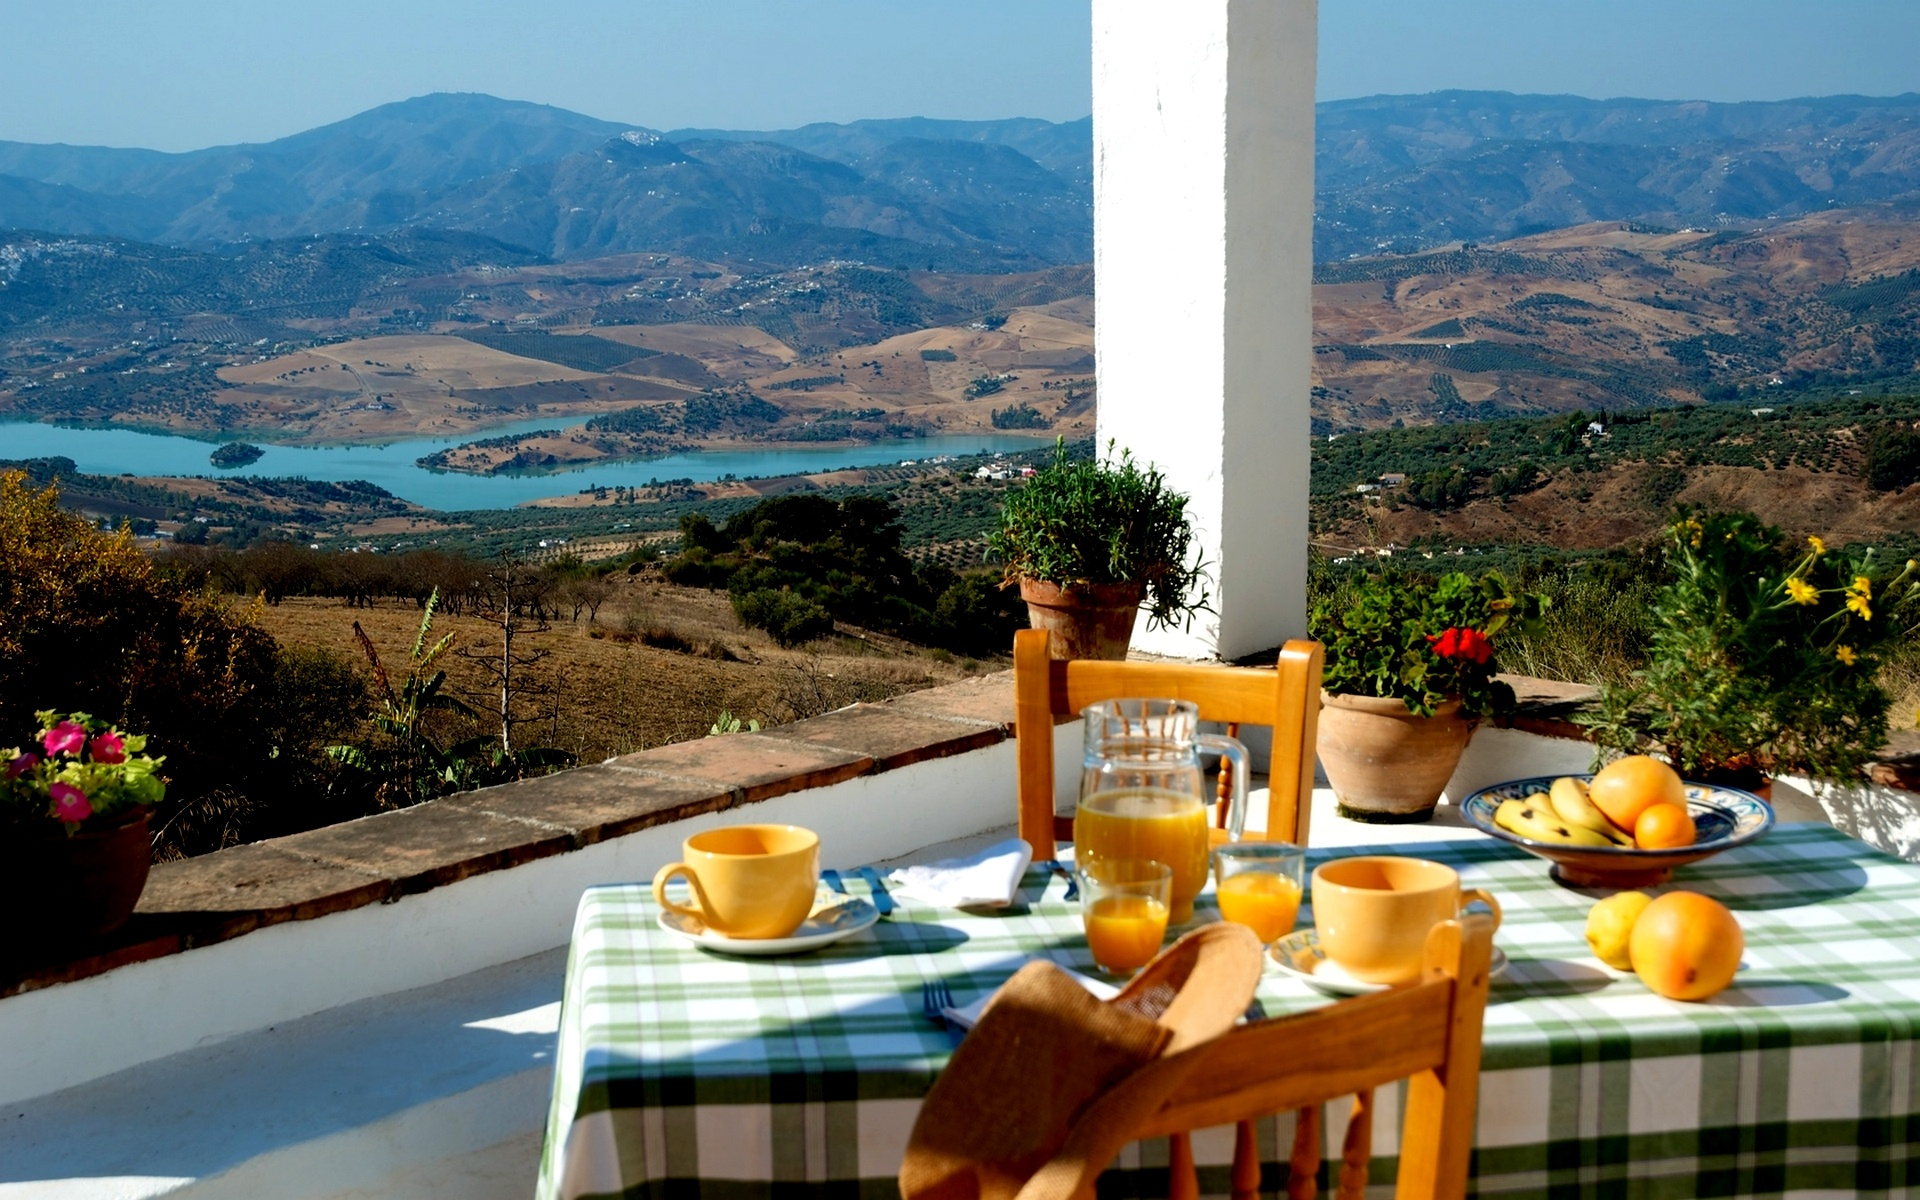 Breakfast Landscape Wallpaper in 1920x1200 Widescreen